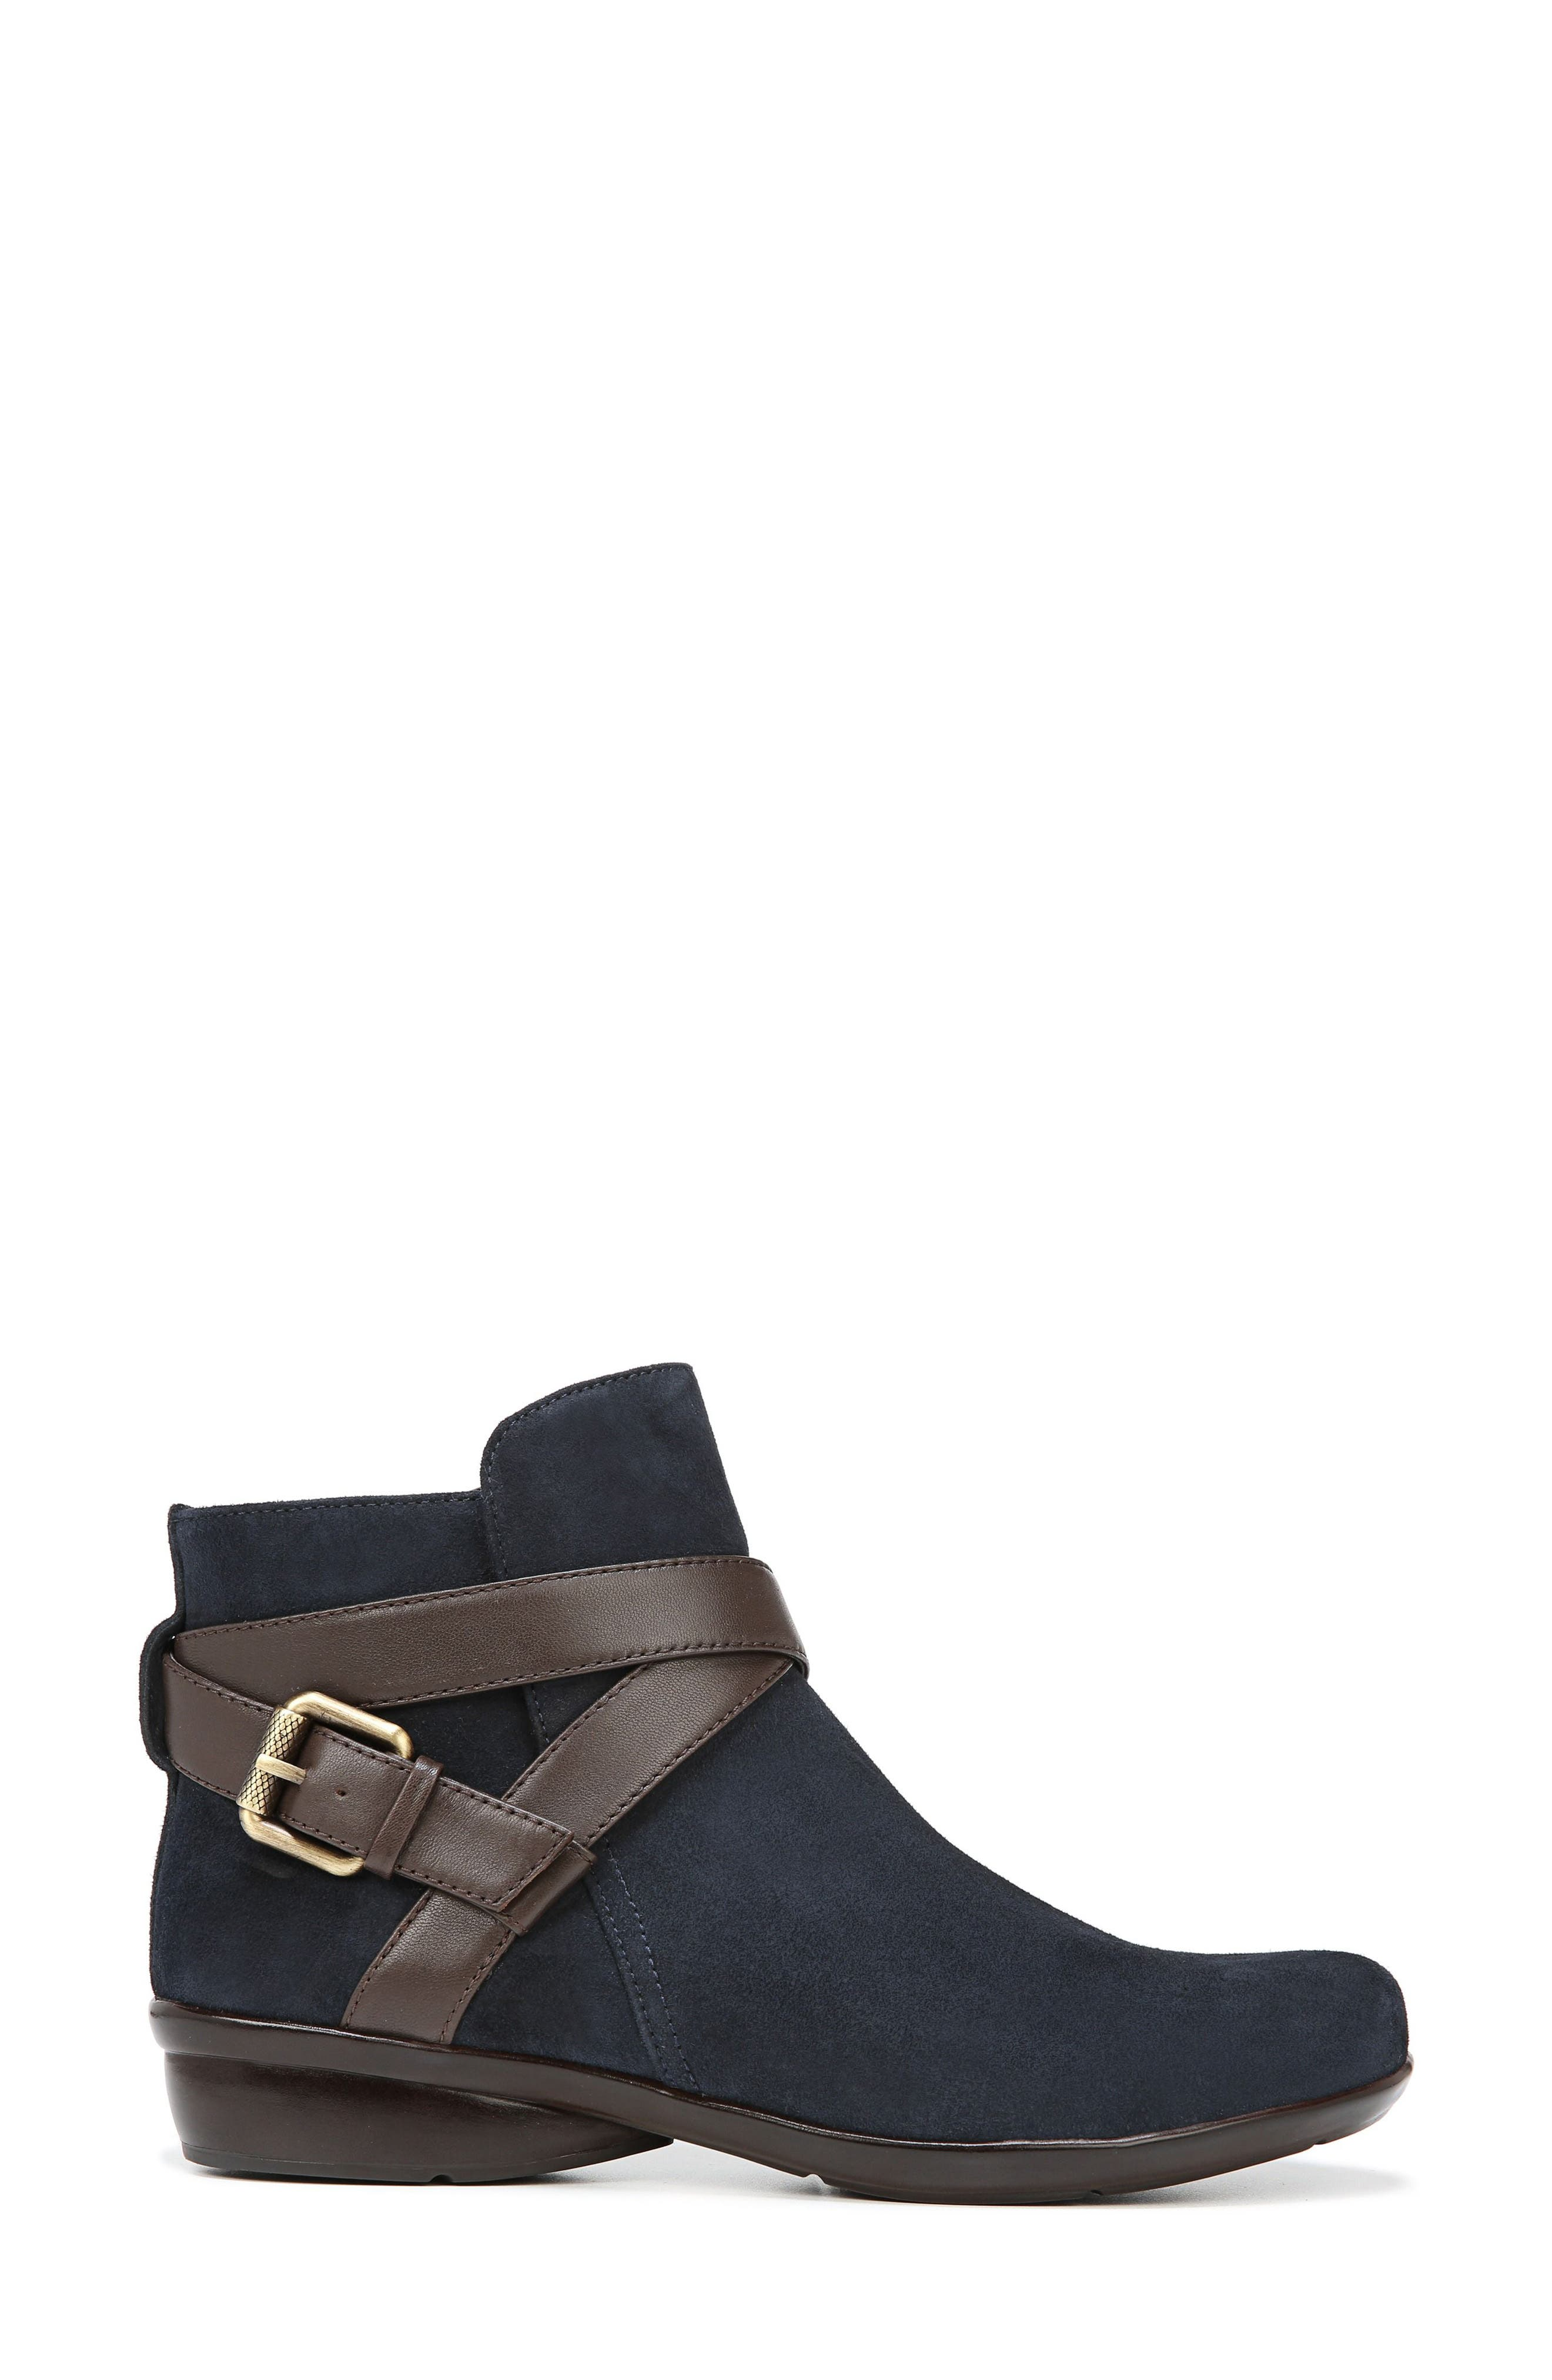 Cassandra Buckle Strap Bootie,                             Alternate thumbnail 3, color,                             NAVY/ BROWN SUEDE